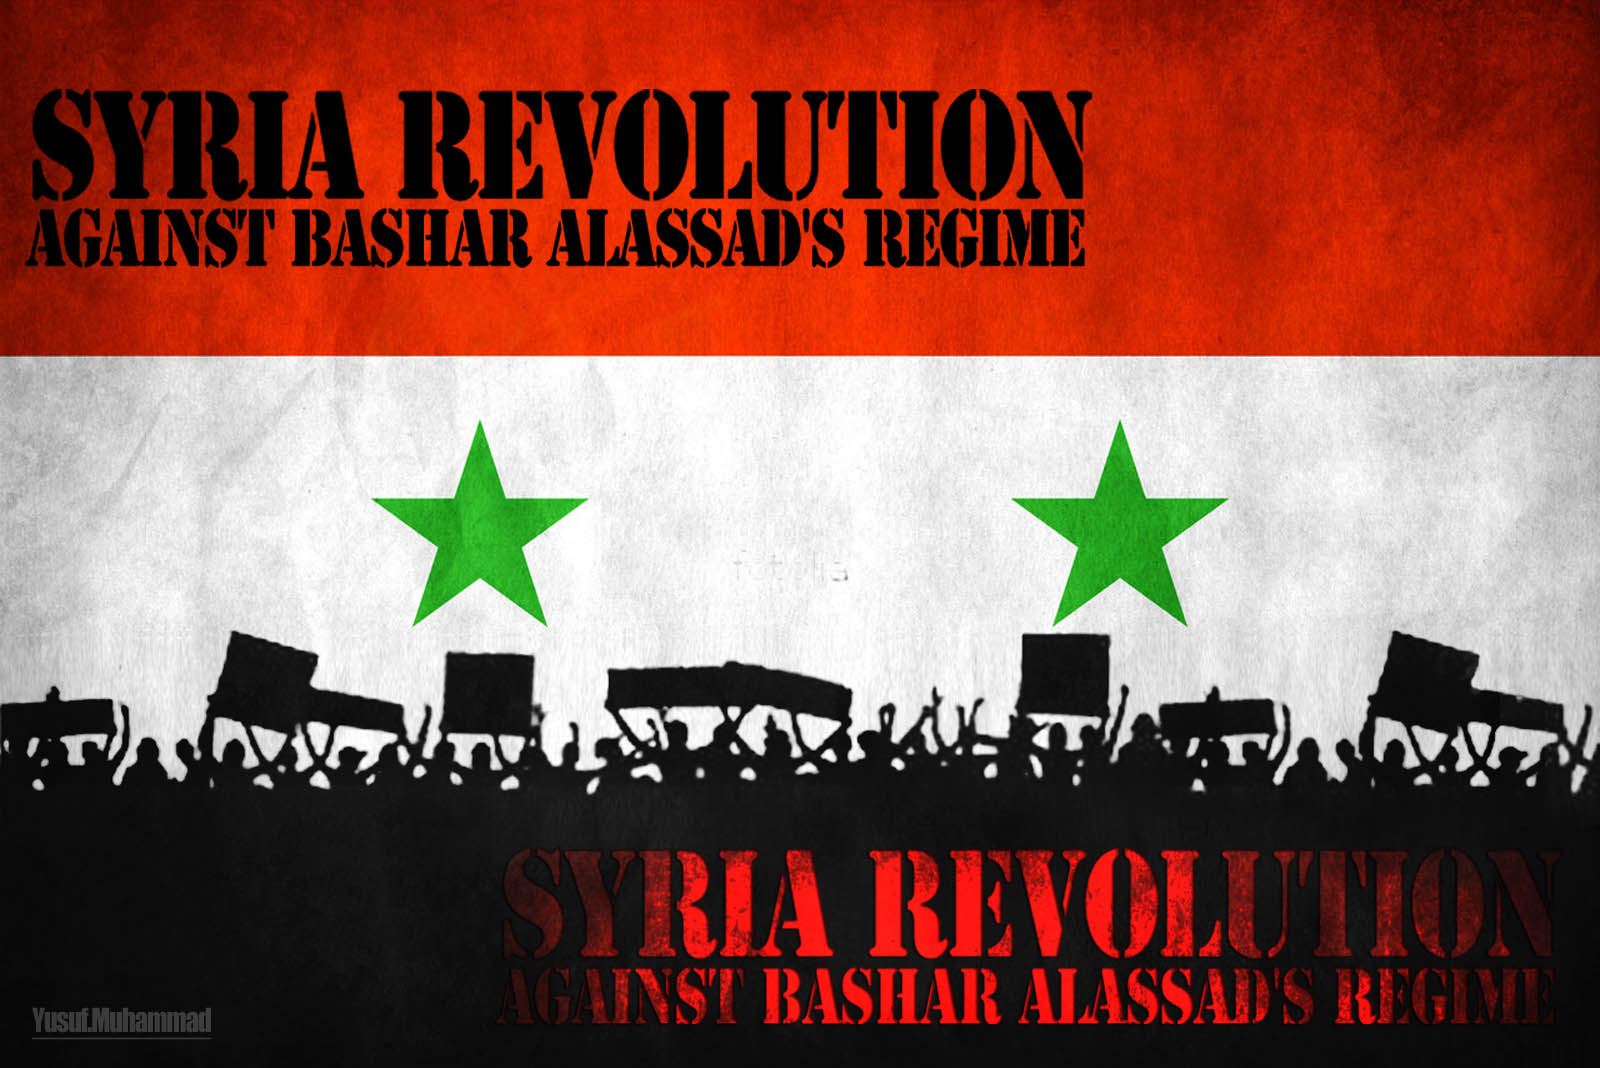 syrian revolution A blog about developments related to syria and the syrian revolution.